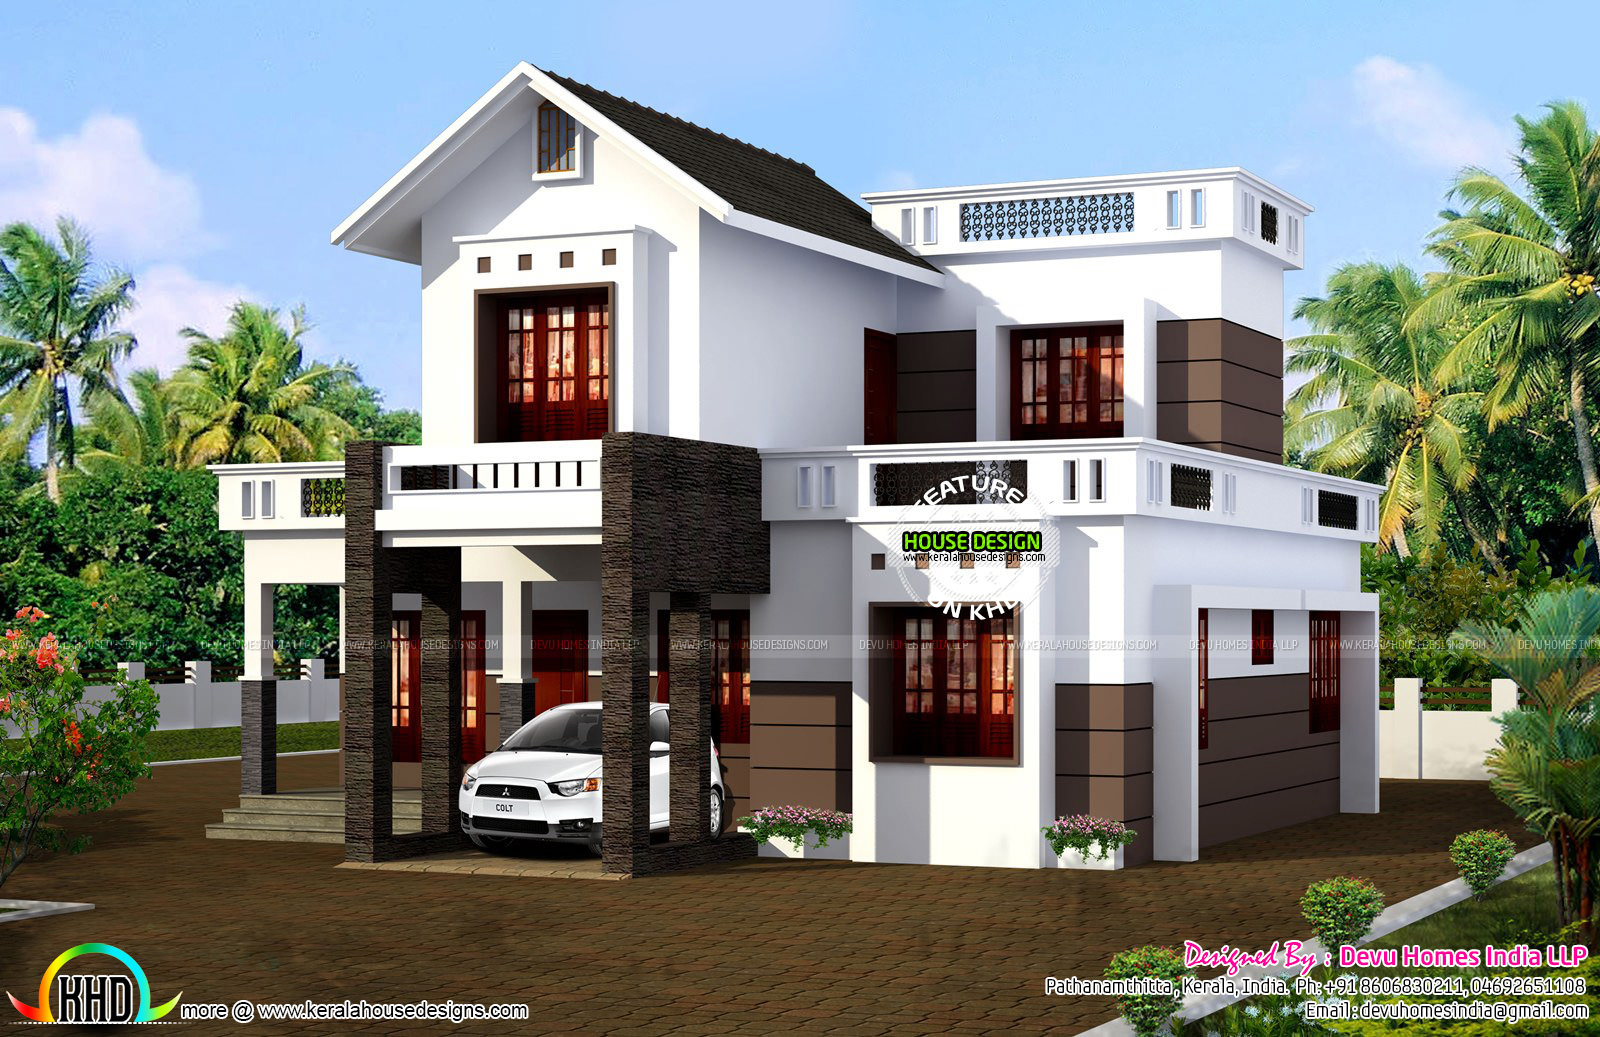 Simple 1524 sq ft house plan kerala home design and for Simple small modern house